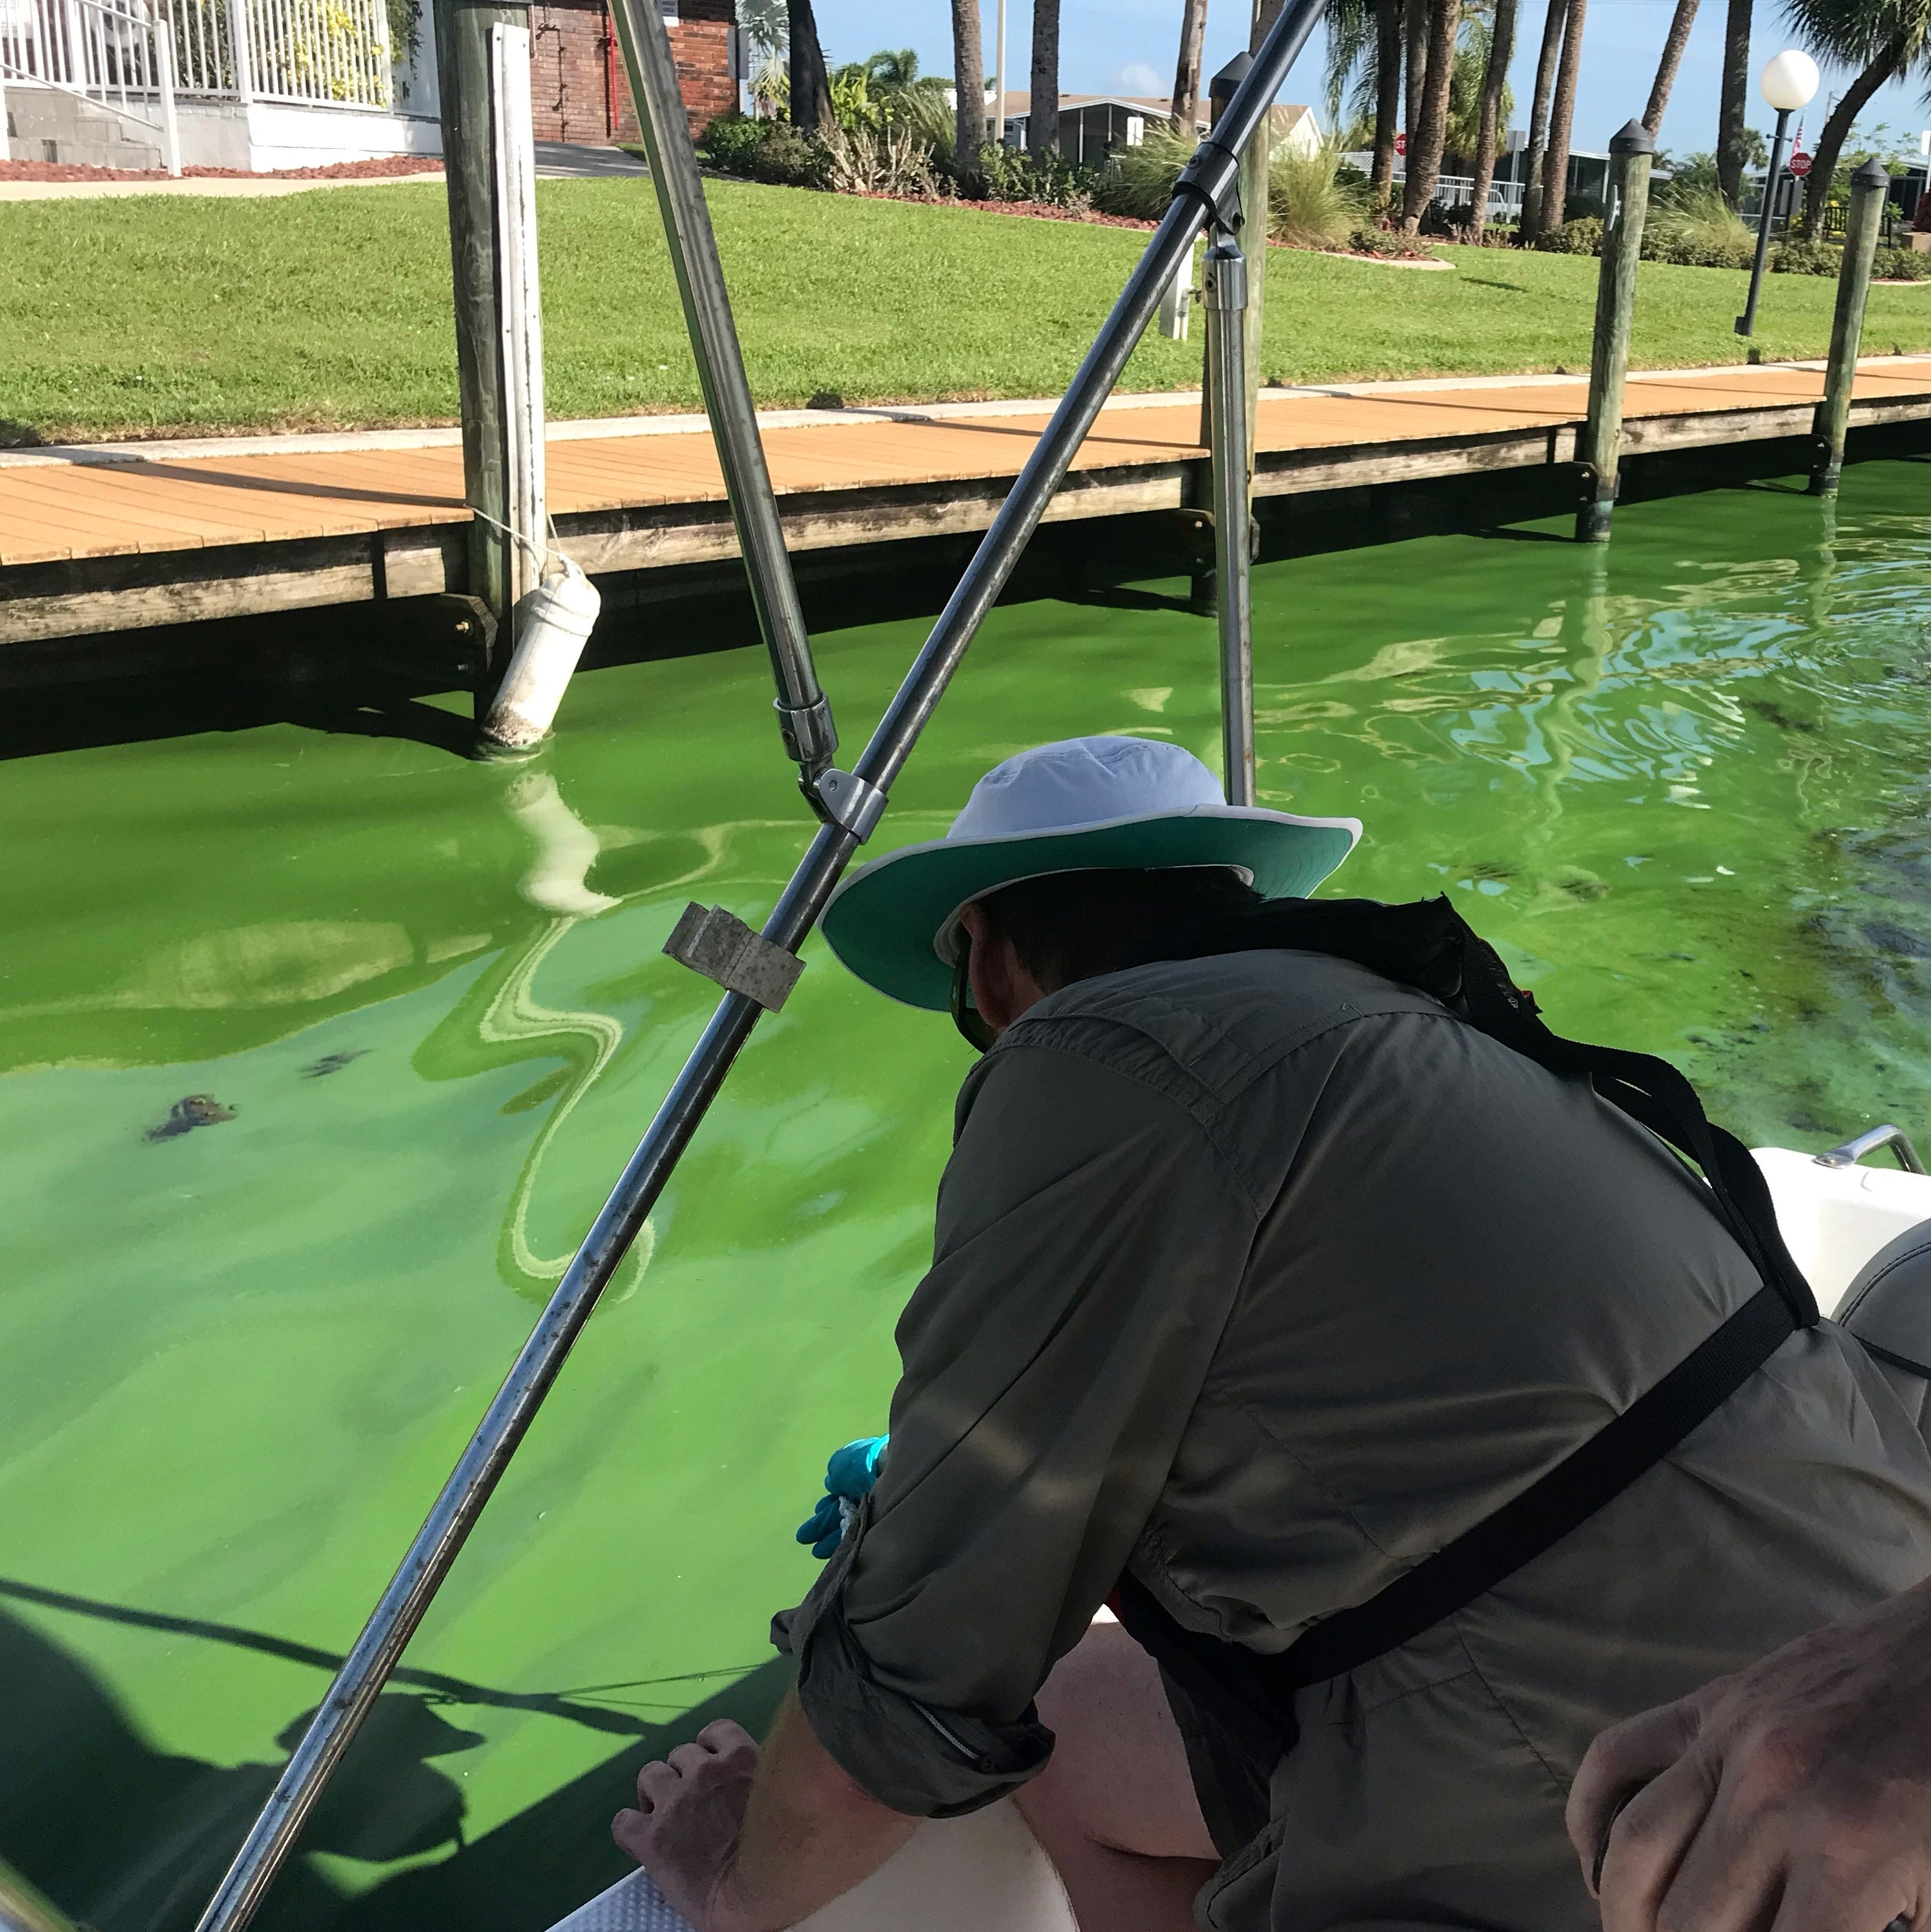 Our health depends on further research into algae blooms